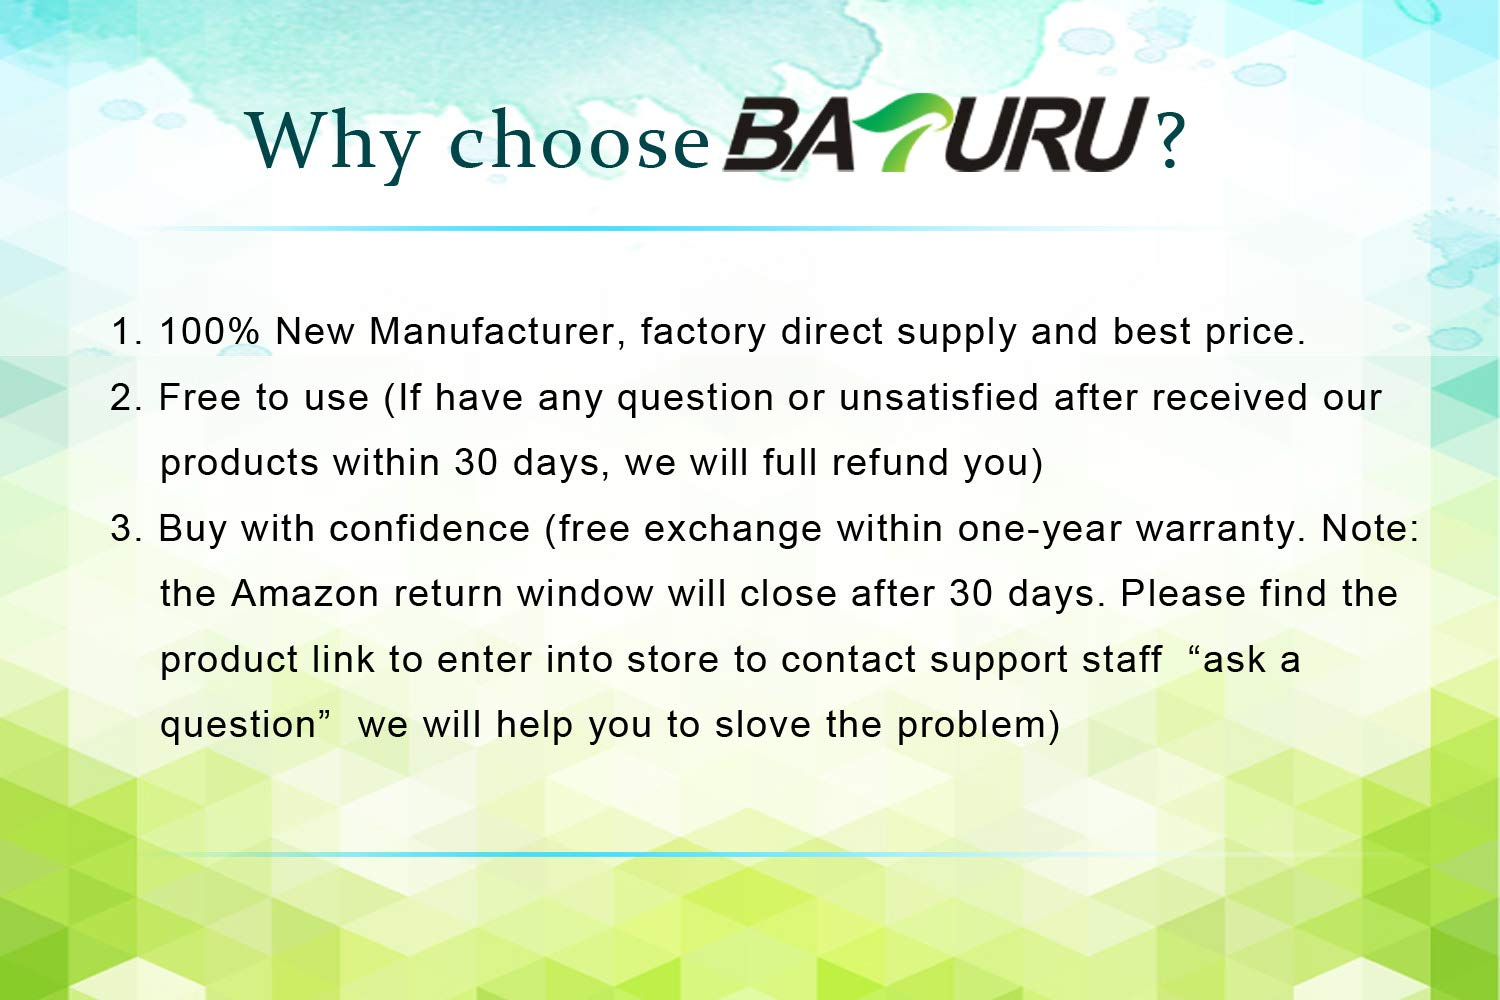 BATURU A1322 Laptop Battery for MacBook Pro 13 inch A1322 A1278 (mid 2009 2010 Early 2011 Late 2012 Version) MB990LL/A MC724LL/A MD314LL/A 020-6547-A - 12 Month Warranty by BATURU (Image #7)